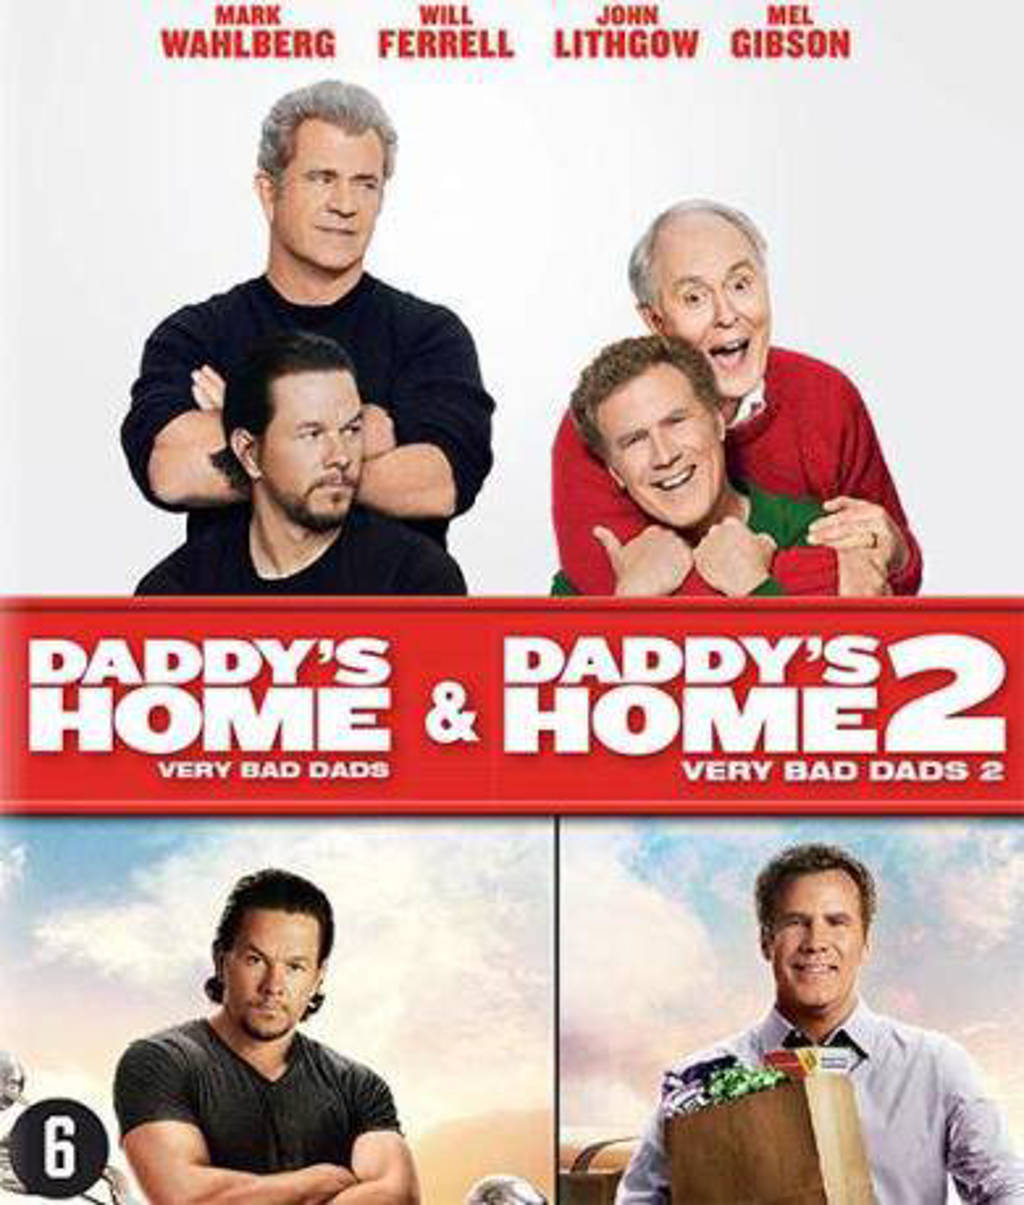 Daddy's home 1+2 (Blu-ray)